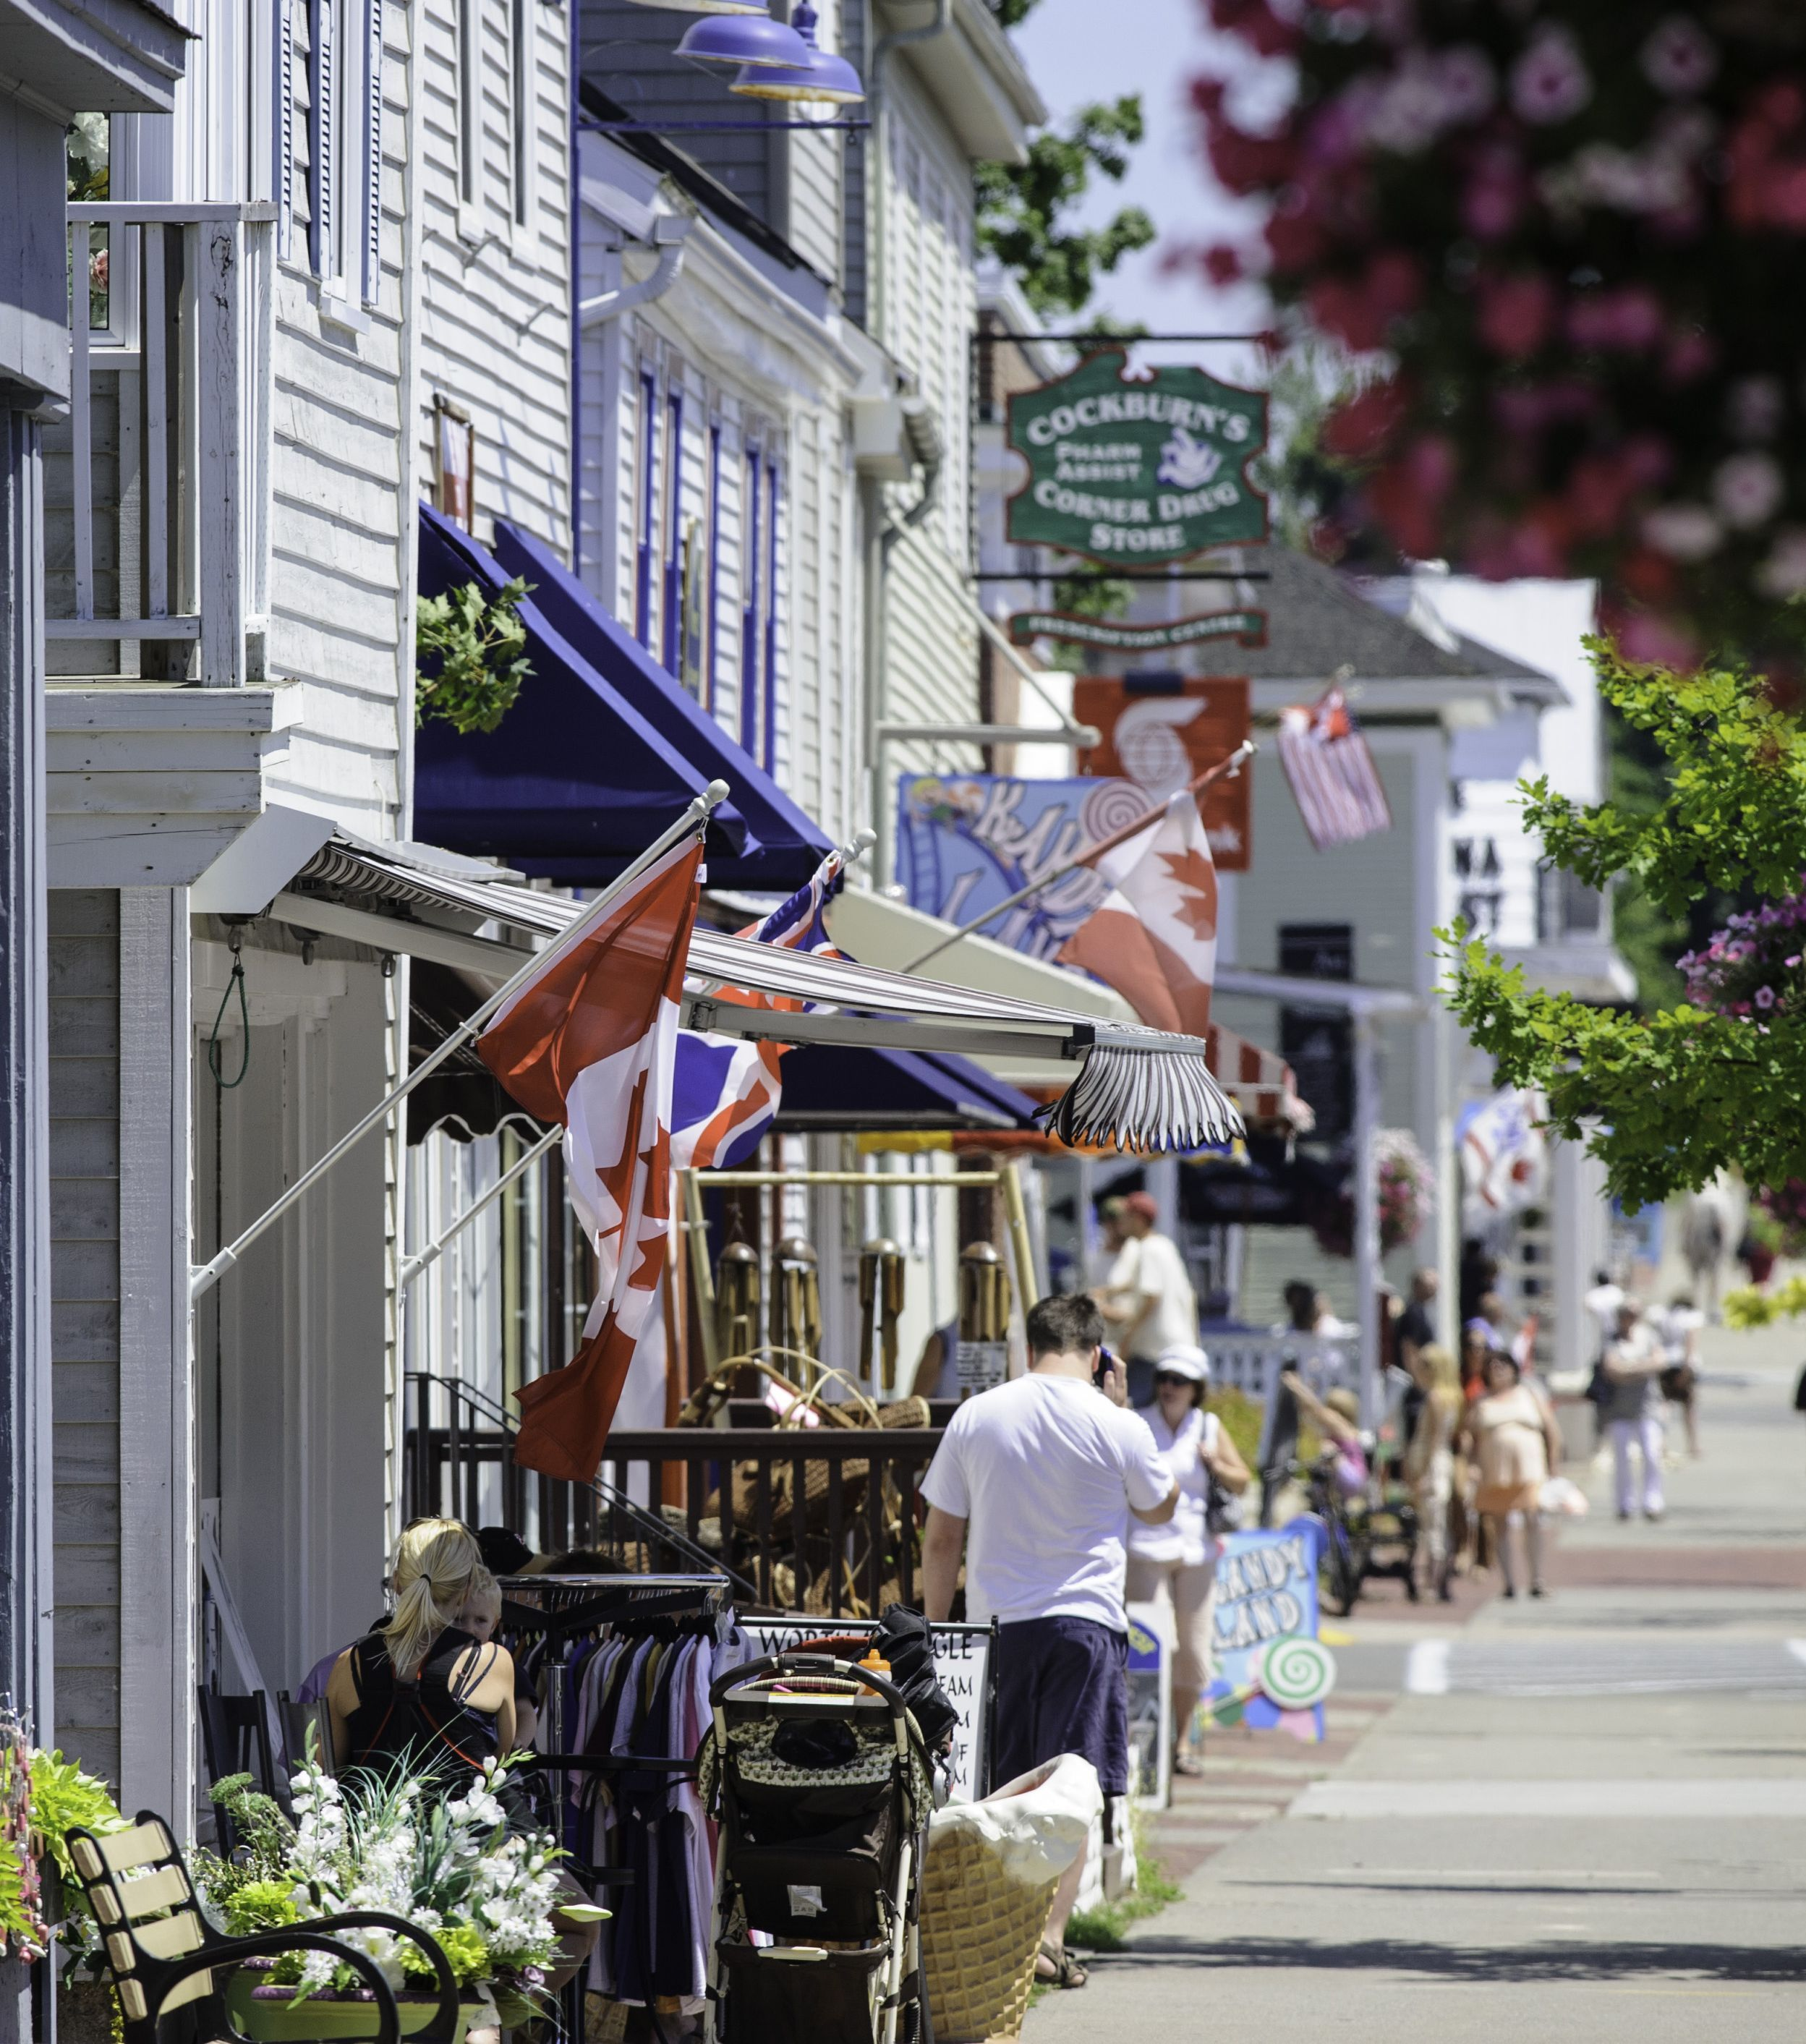 Browse The Local Shops And Restaurants In The Small